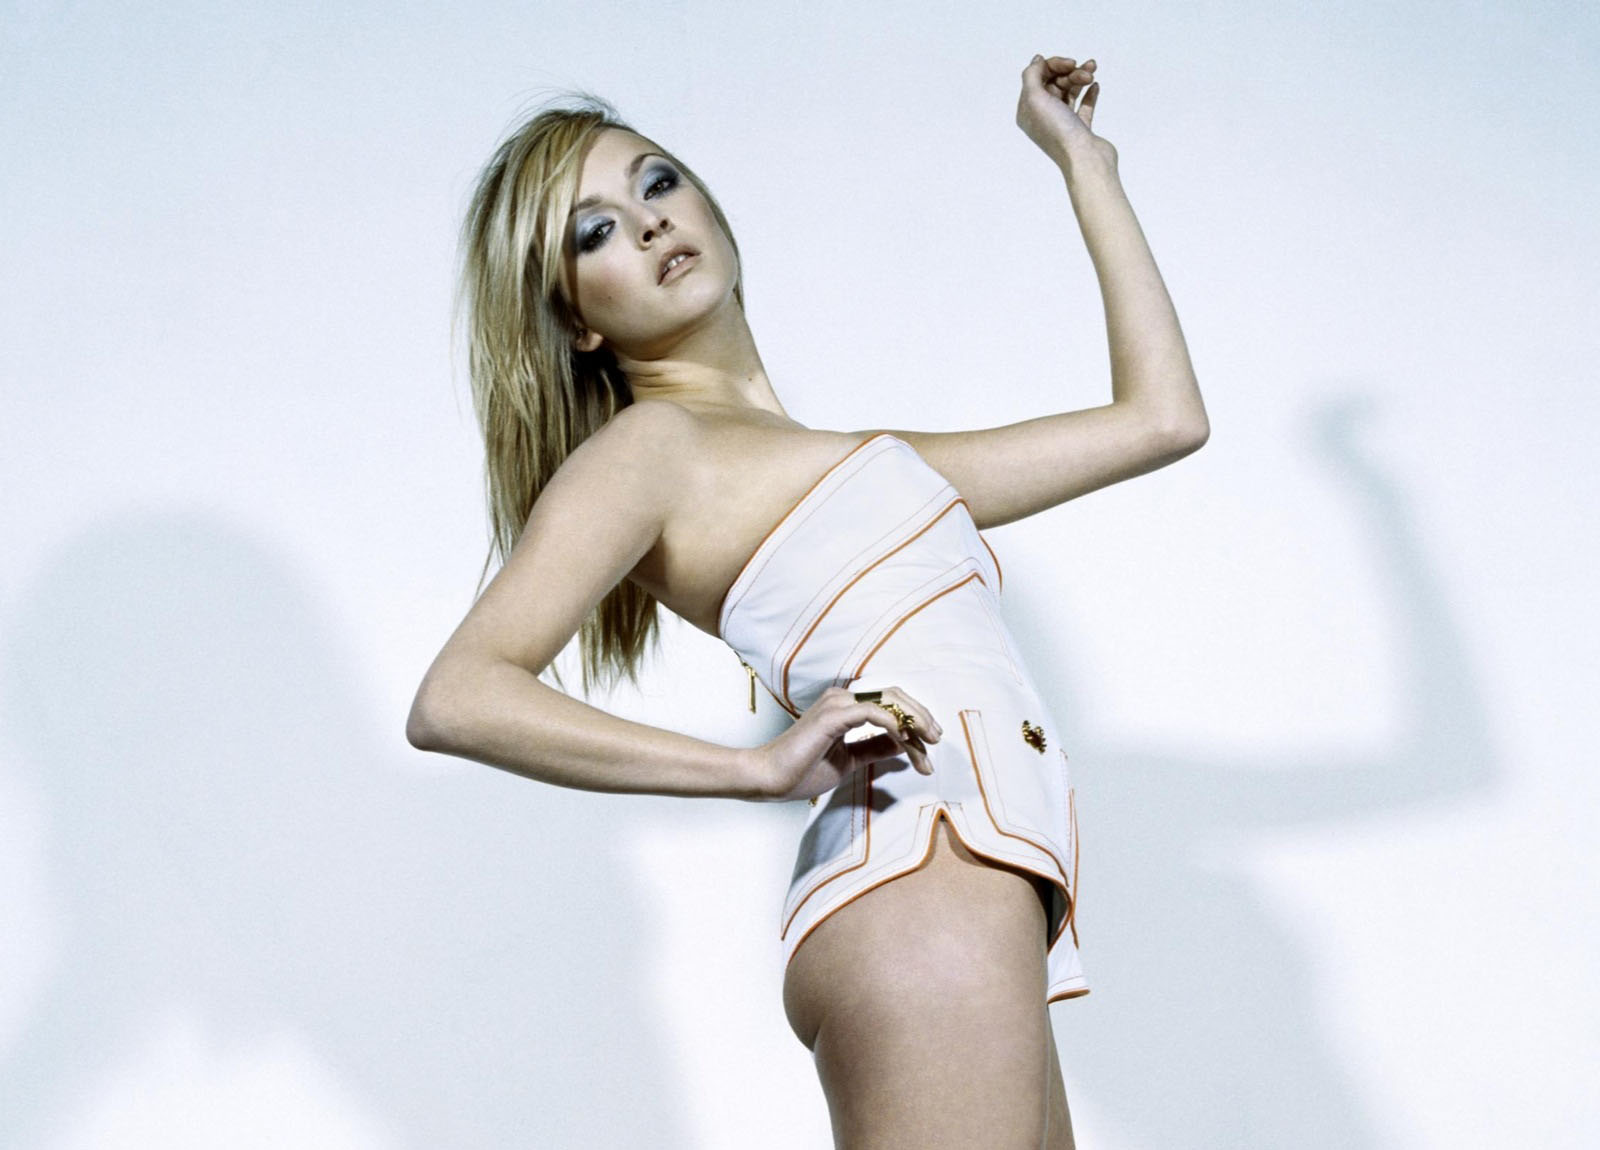 http://4.bp.blogspot.com/-cGHO0qelh5w/UBN5xT_2W3I/AAAAAAAAAx0/UGs9hU21MLI/s1600/Fearne-Cotton-Hot-Wallpapers-1.jpg